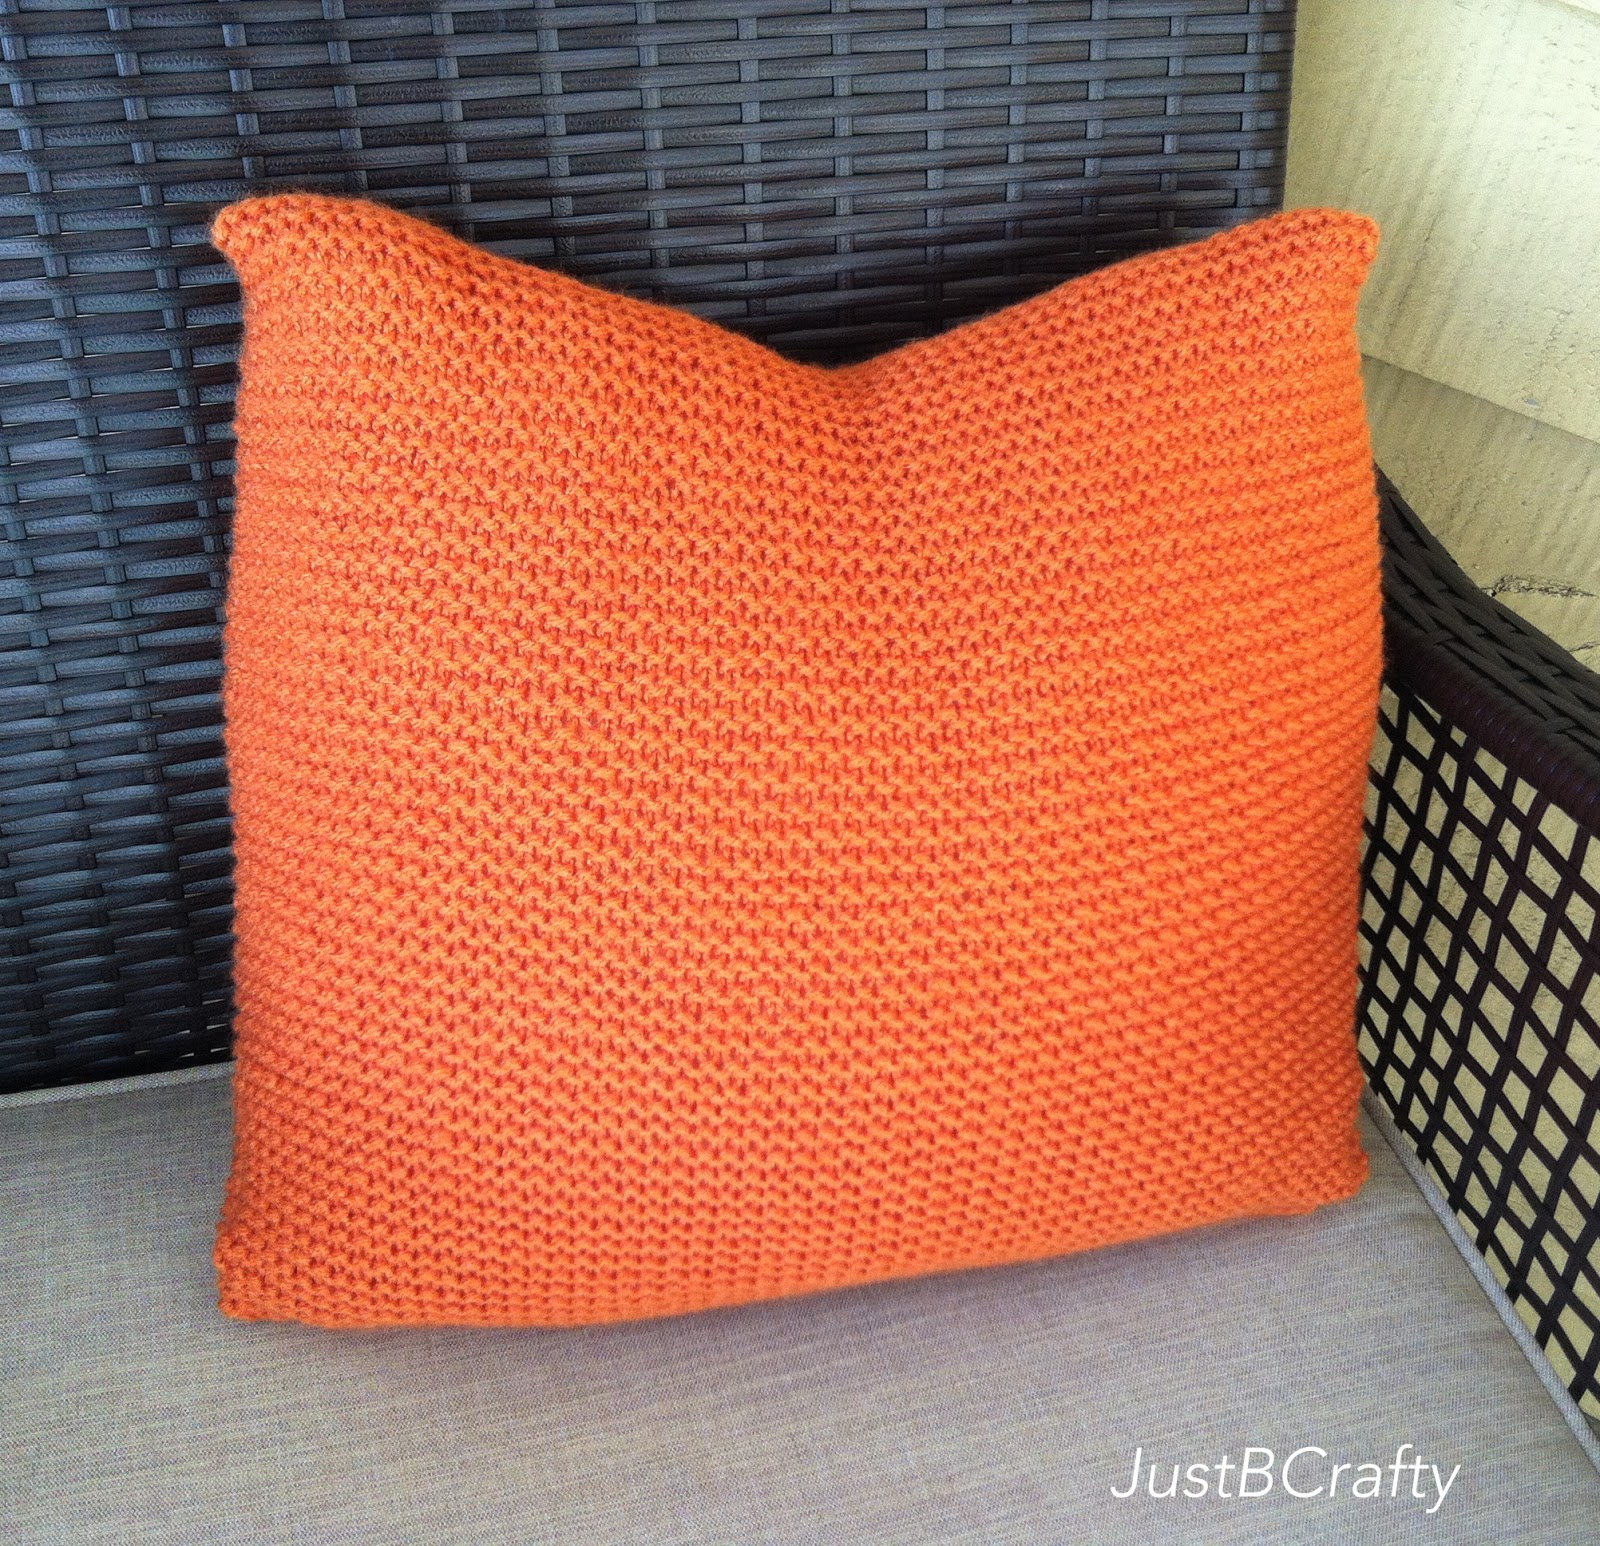 Diy crate and barrel inspired simple knit pillow just be crafty jeuxipadfo Image collections